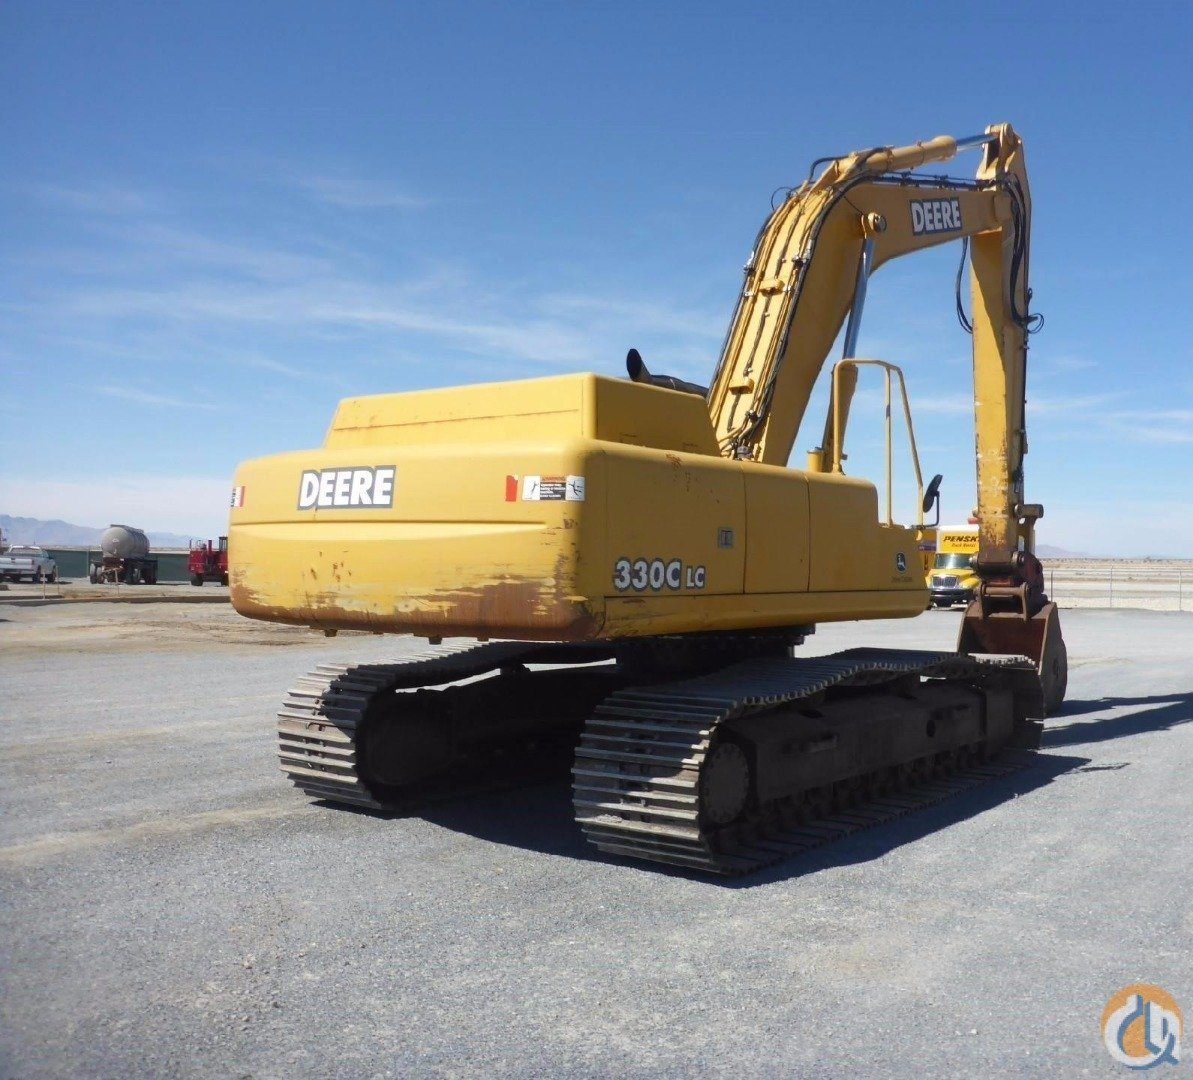 2005 DEERE 330C LC Crawler DEERE 330C LC Equipment Sales Inc. 18183 on CraneNetwork.com